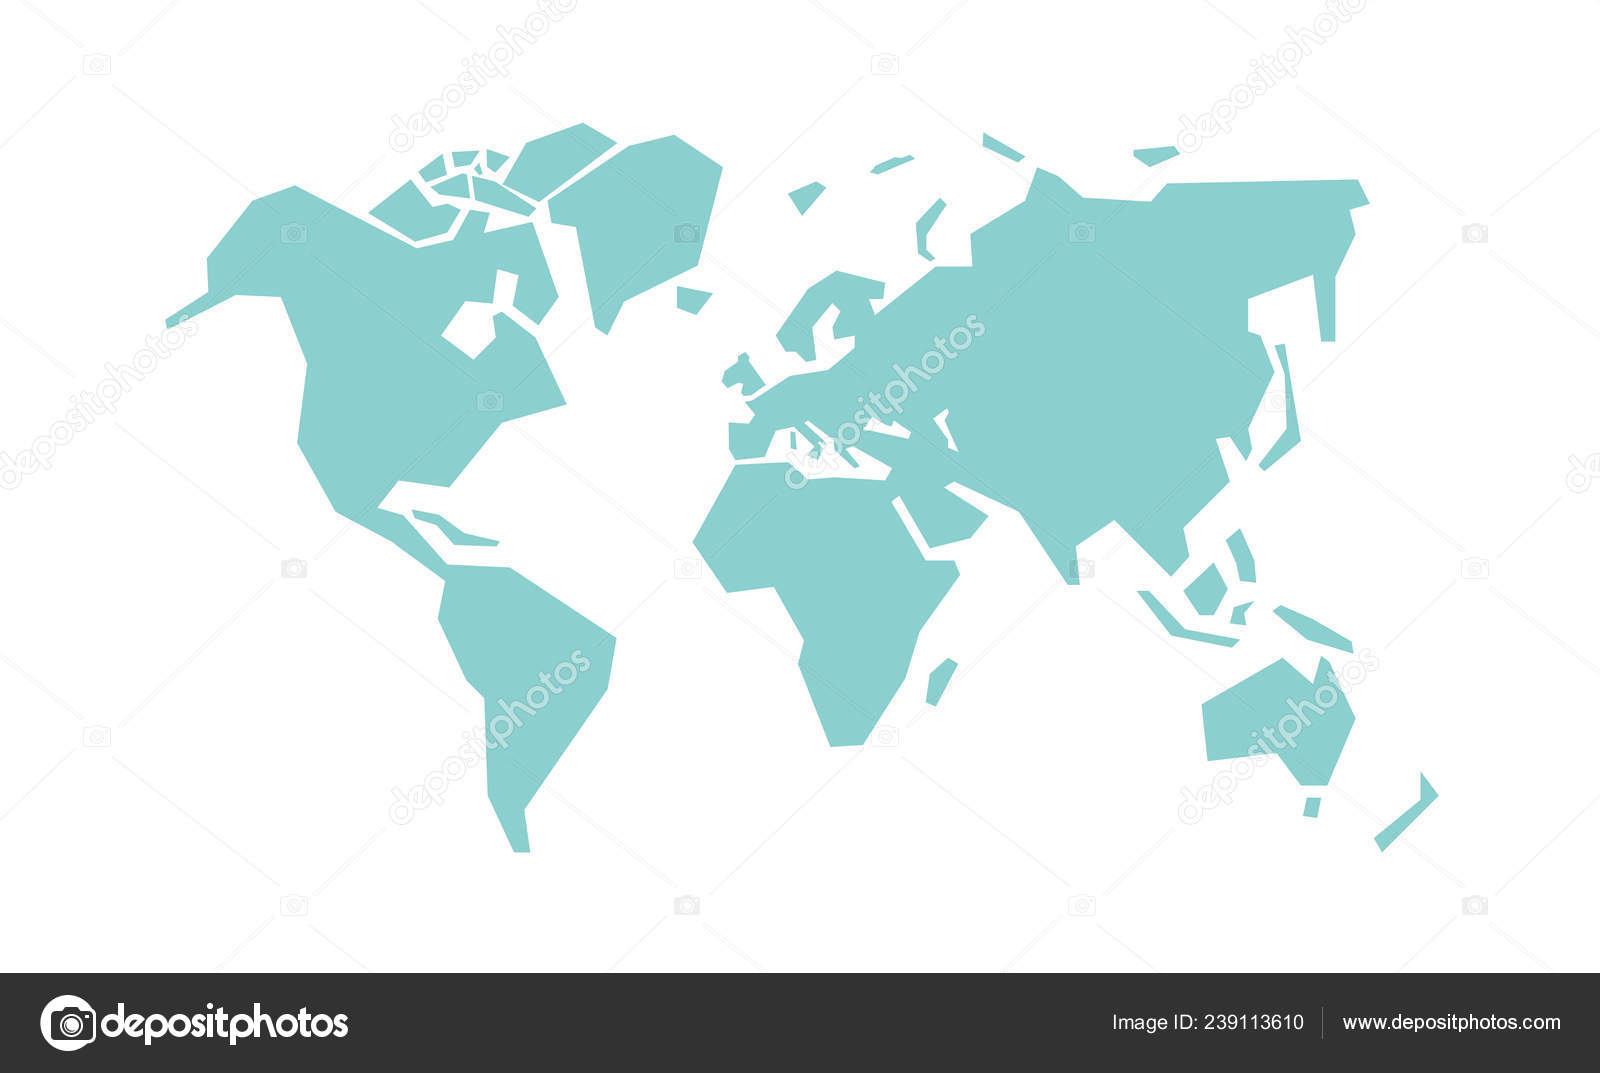 Simplified World Map Stylized Vector Illustration — Stock ... on blue world map vector, simple world map vector, black white world map vector, detailed world map vector,